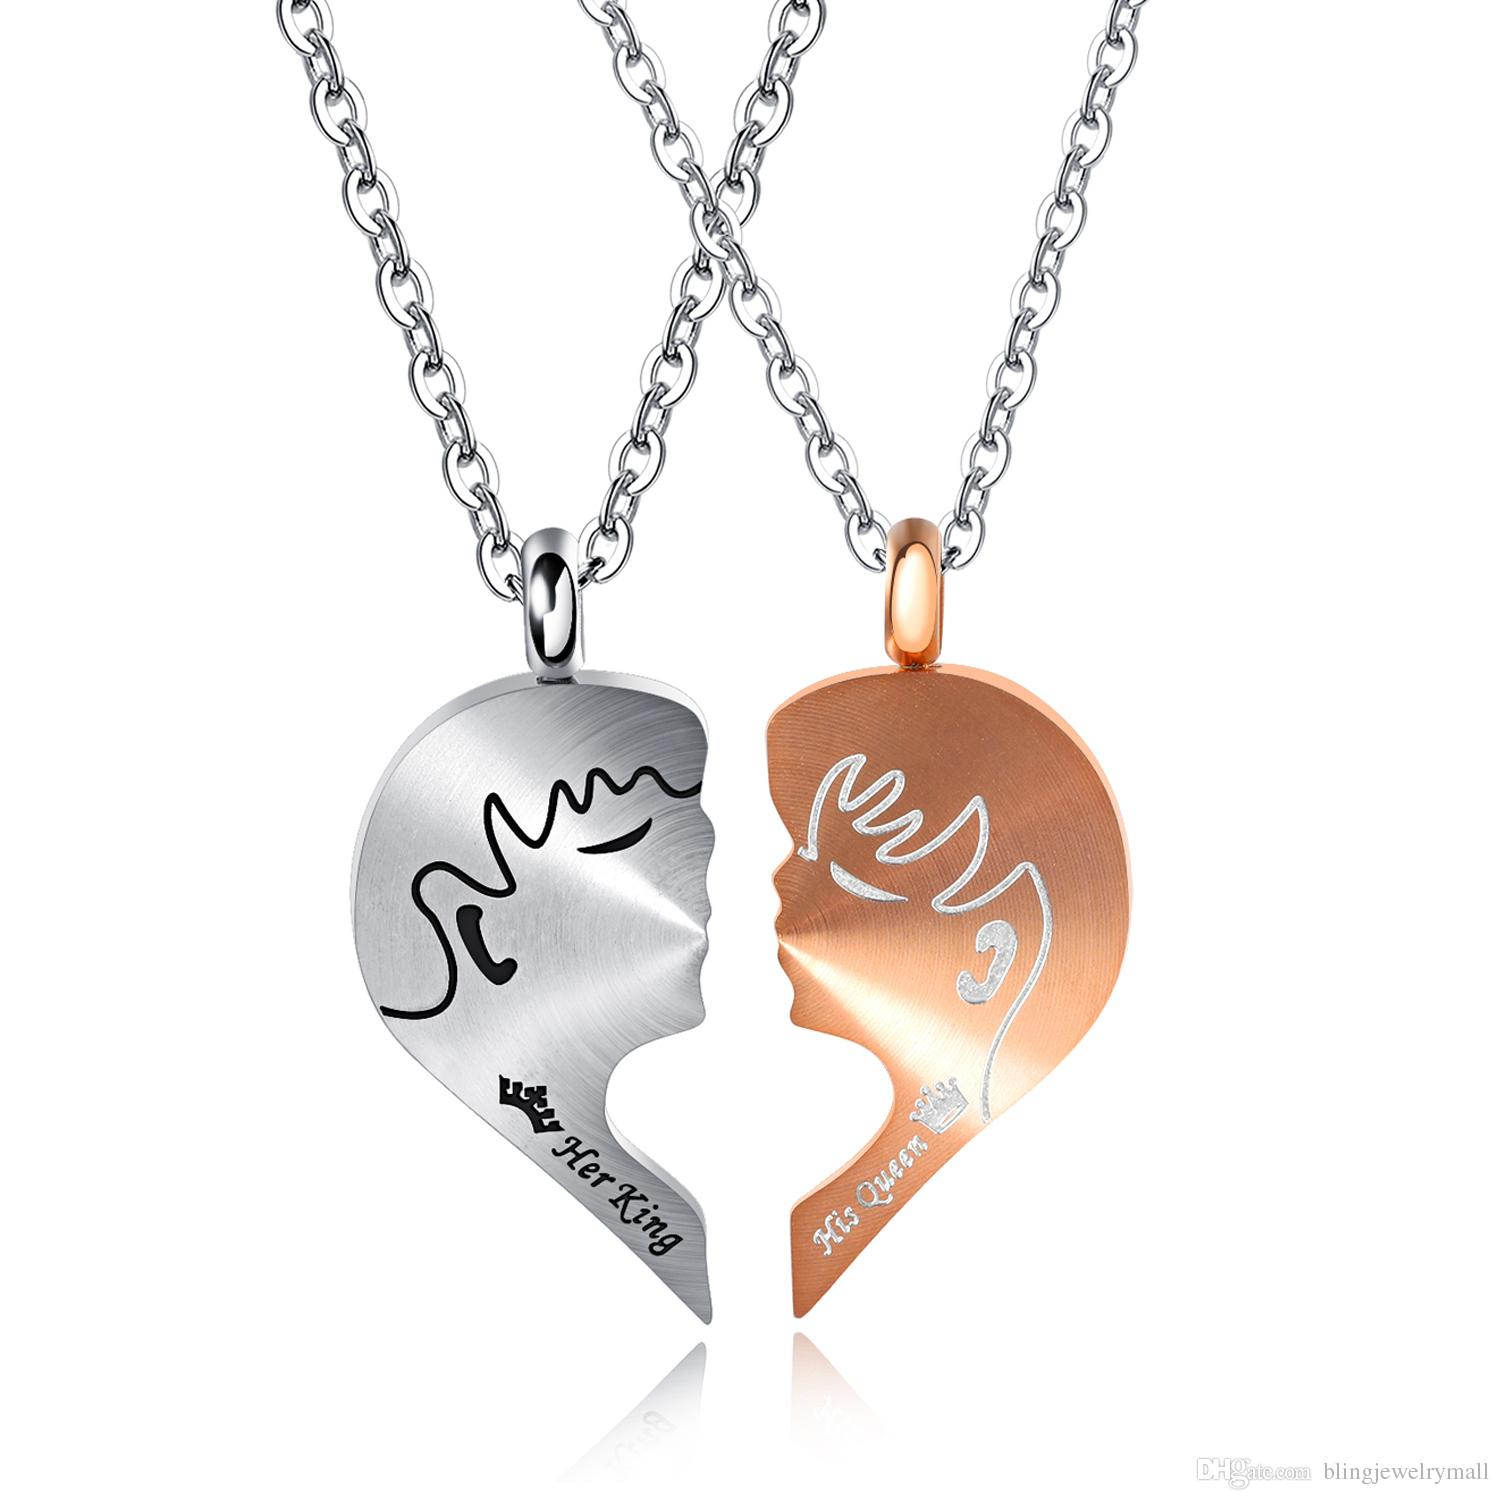 Her King His Queen Love Necklaces for Couples Titanium Steel Necklace & pendants Link Chain Trendy Pendant Necklaces 1378